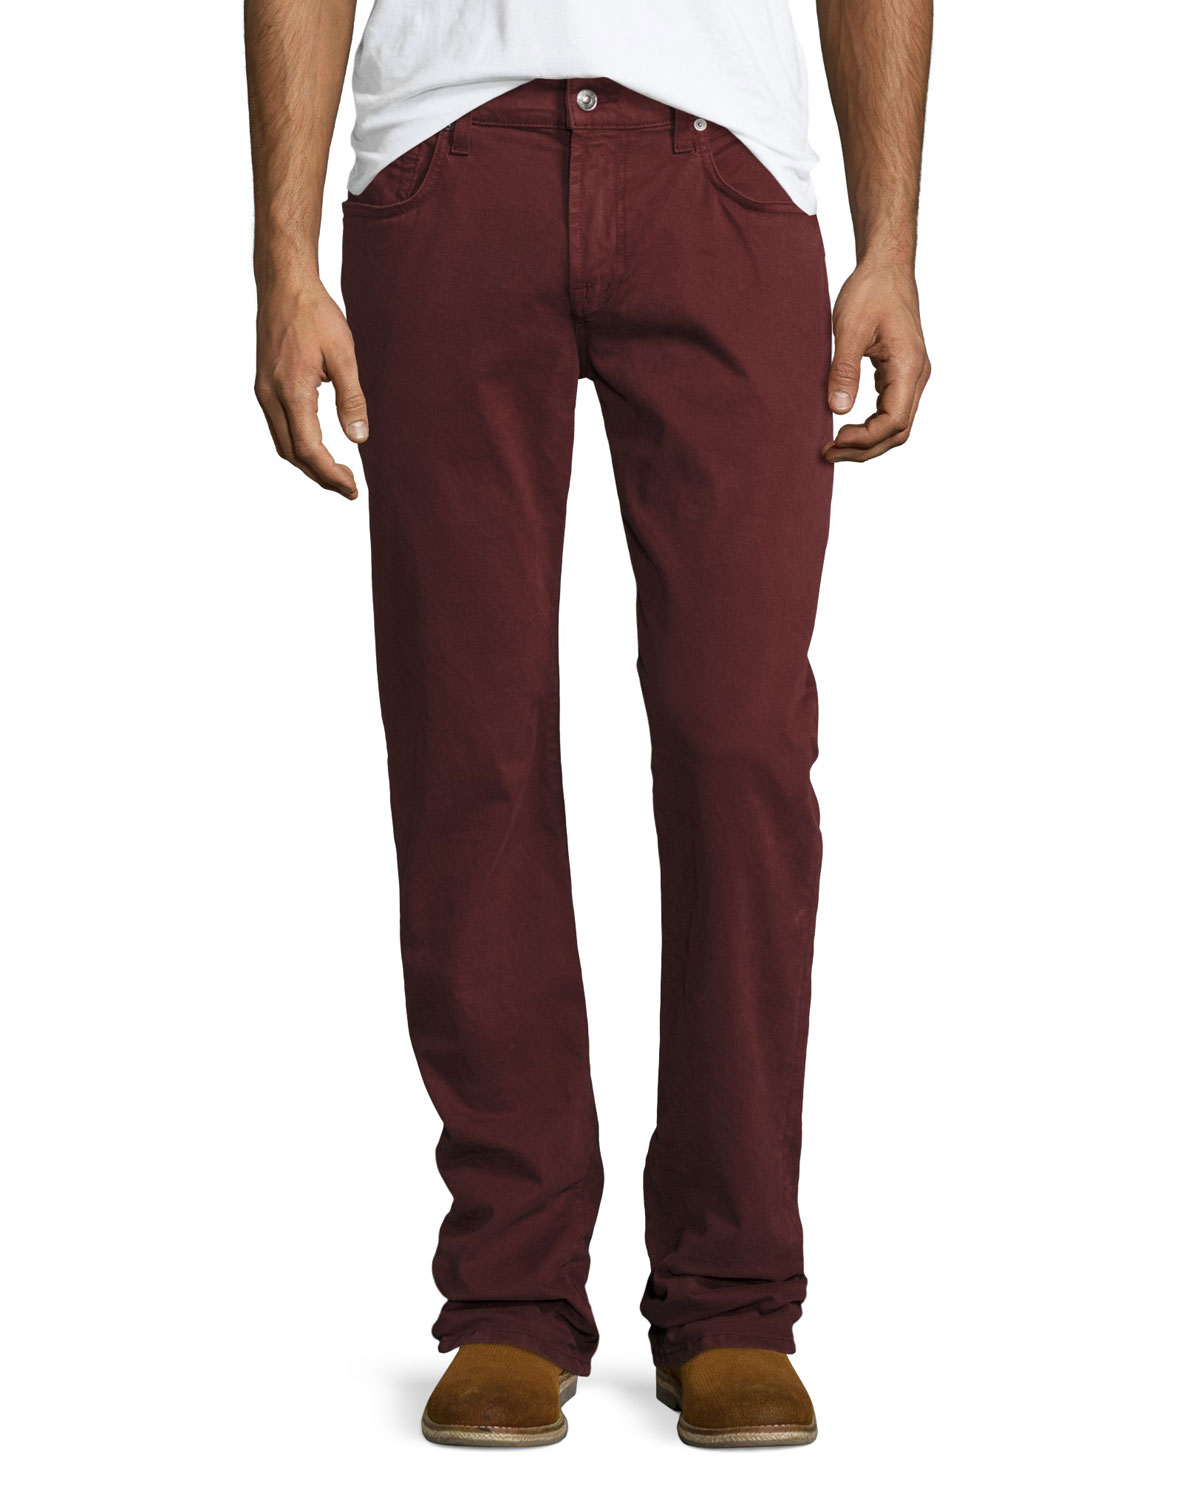 Men's Luxe Performance: Slimmy Chianti Jeans